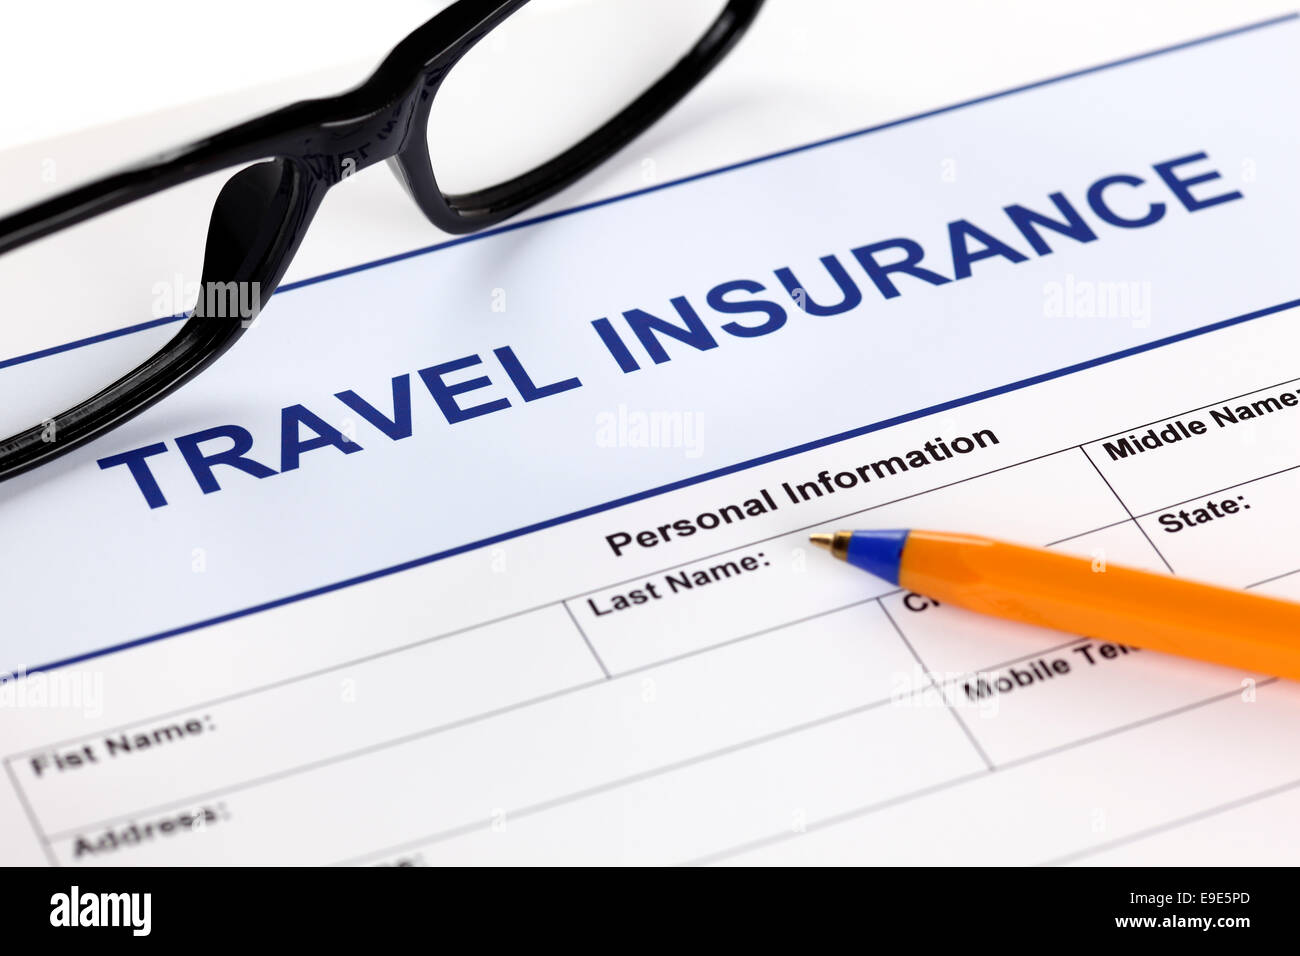 Travel insurance form with glasses and ballpoint pen. - Stock Image